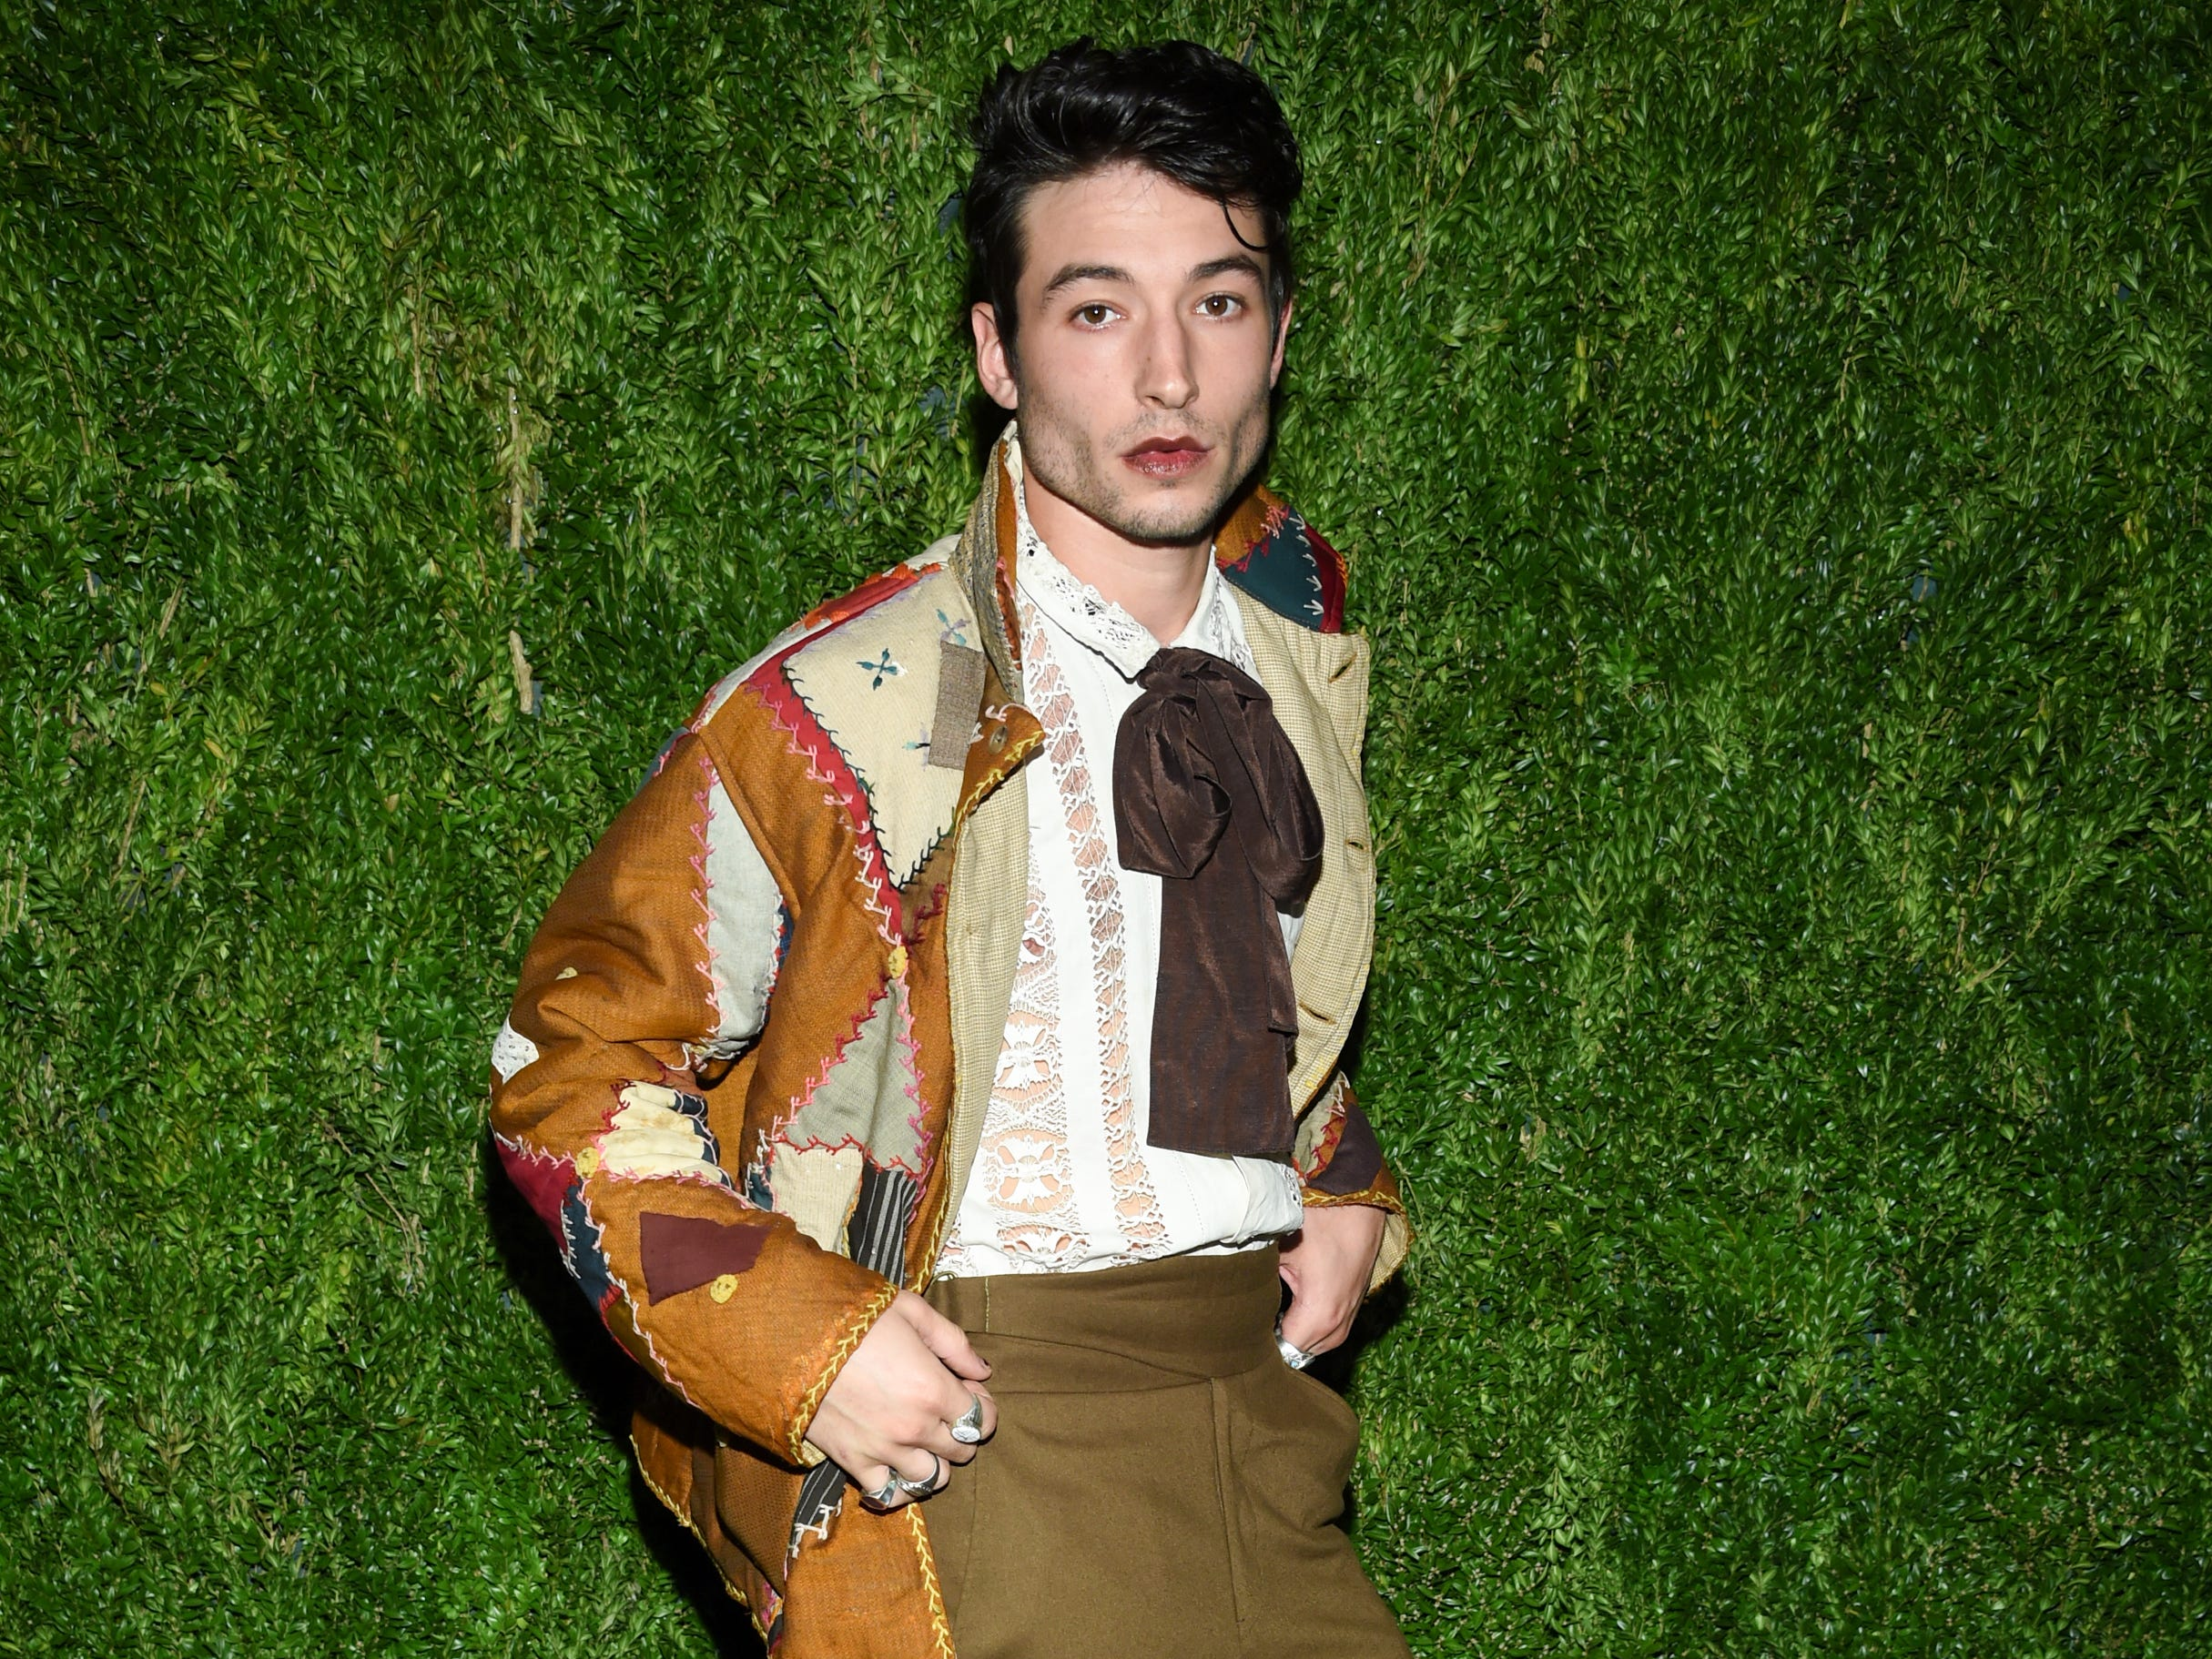 Actor Ezra Miller attends the 15th annual CFDA / Vogue Fashion Fund event at the Brooklyn Navy Yard on Monday, Nov. 5, 2018, in New York. (Photo by Evan Agostini/Invision/AP) ORG XMIT: NYEA119